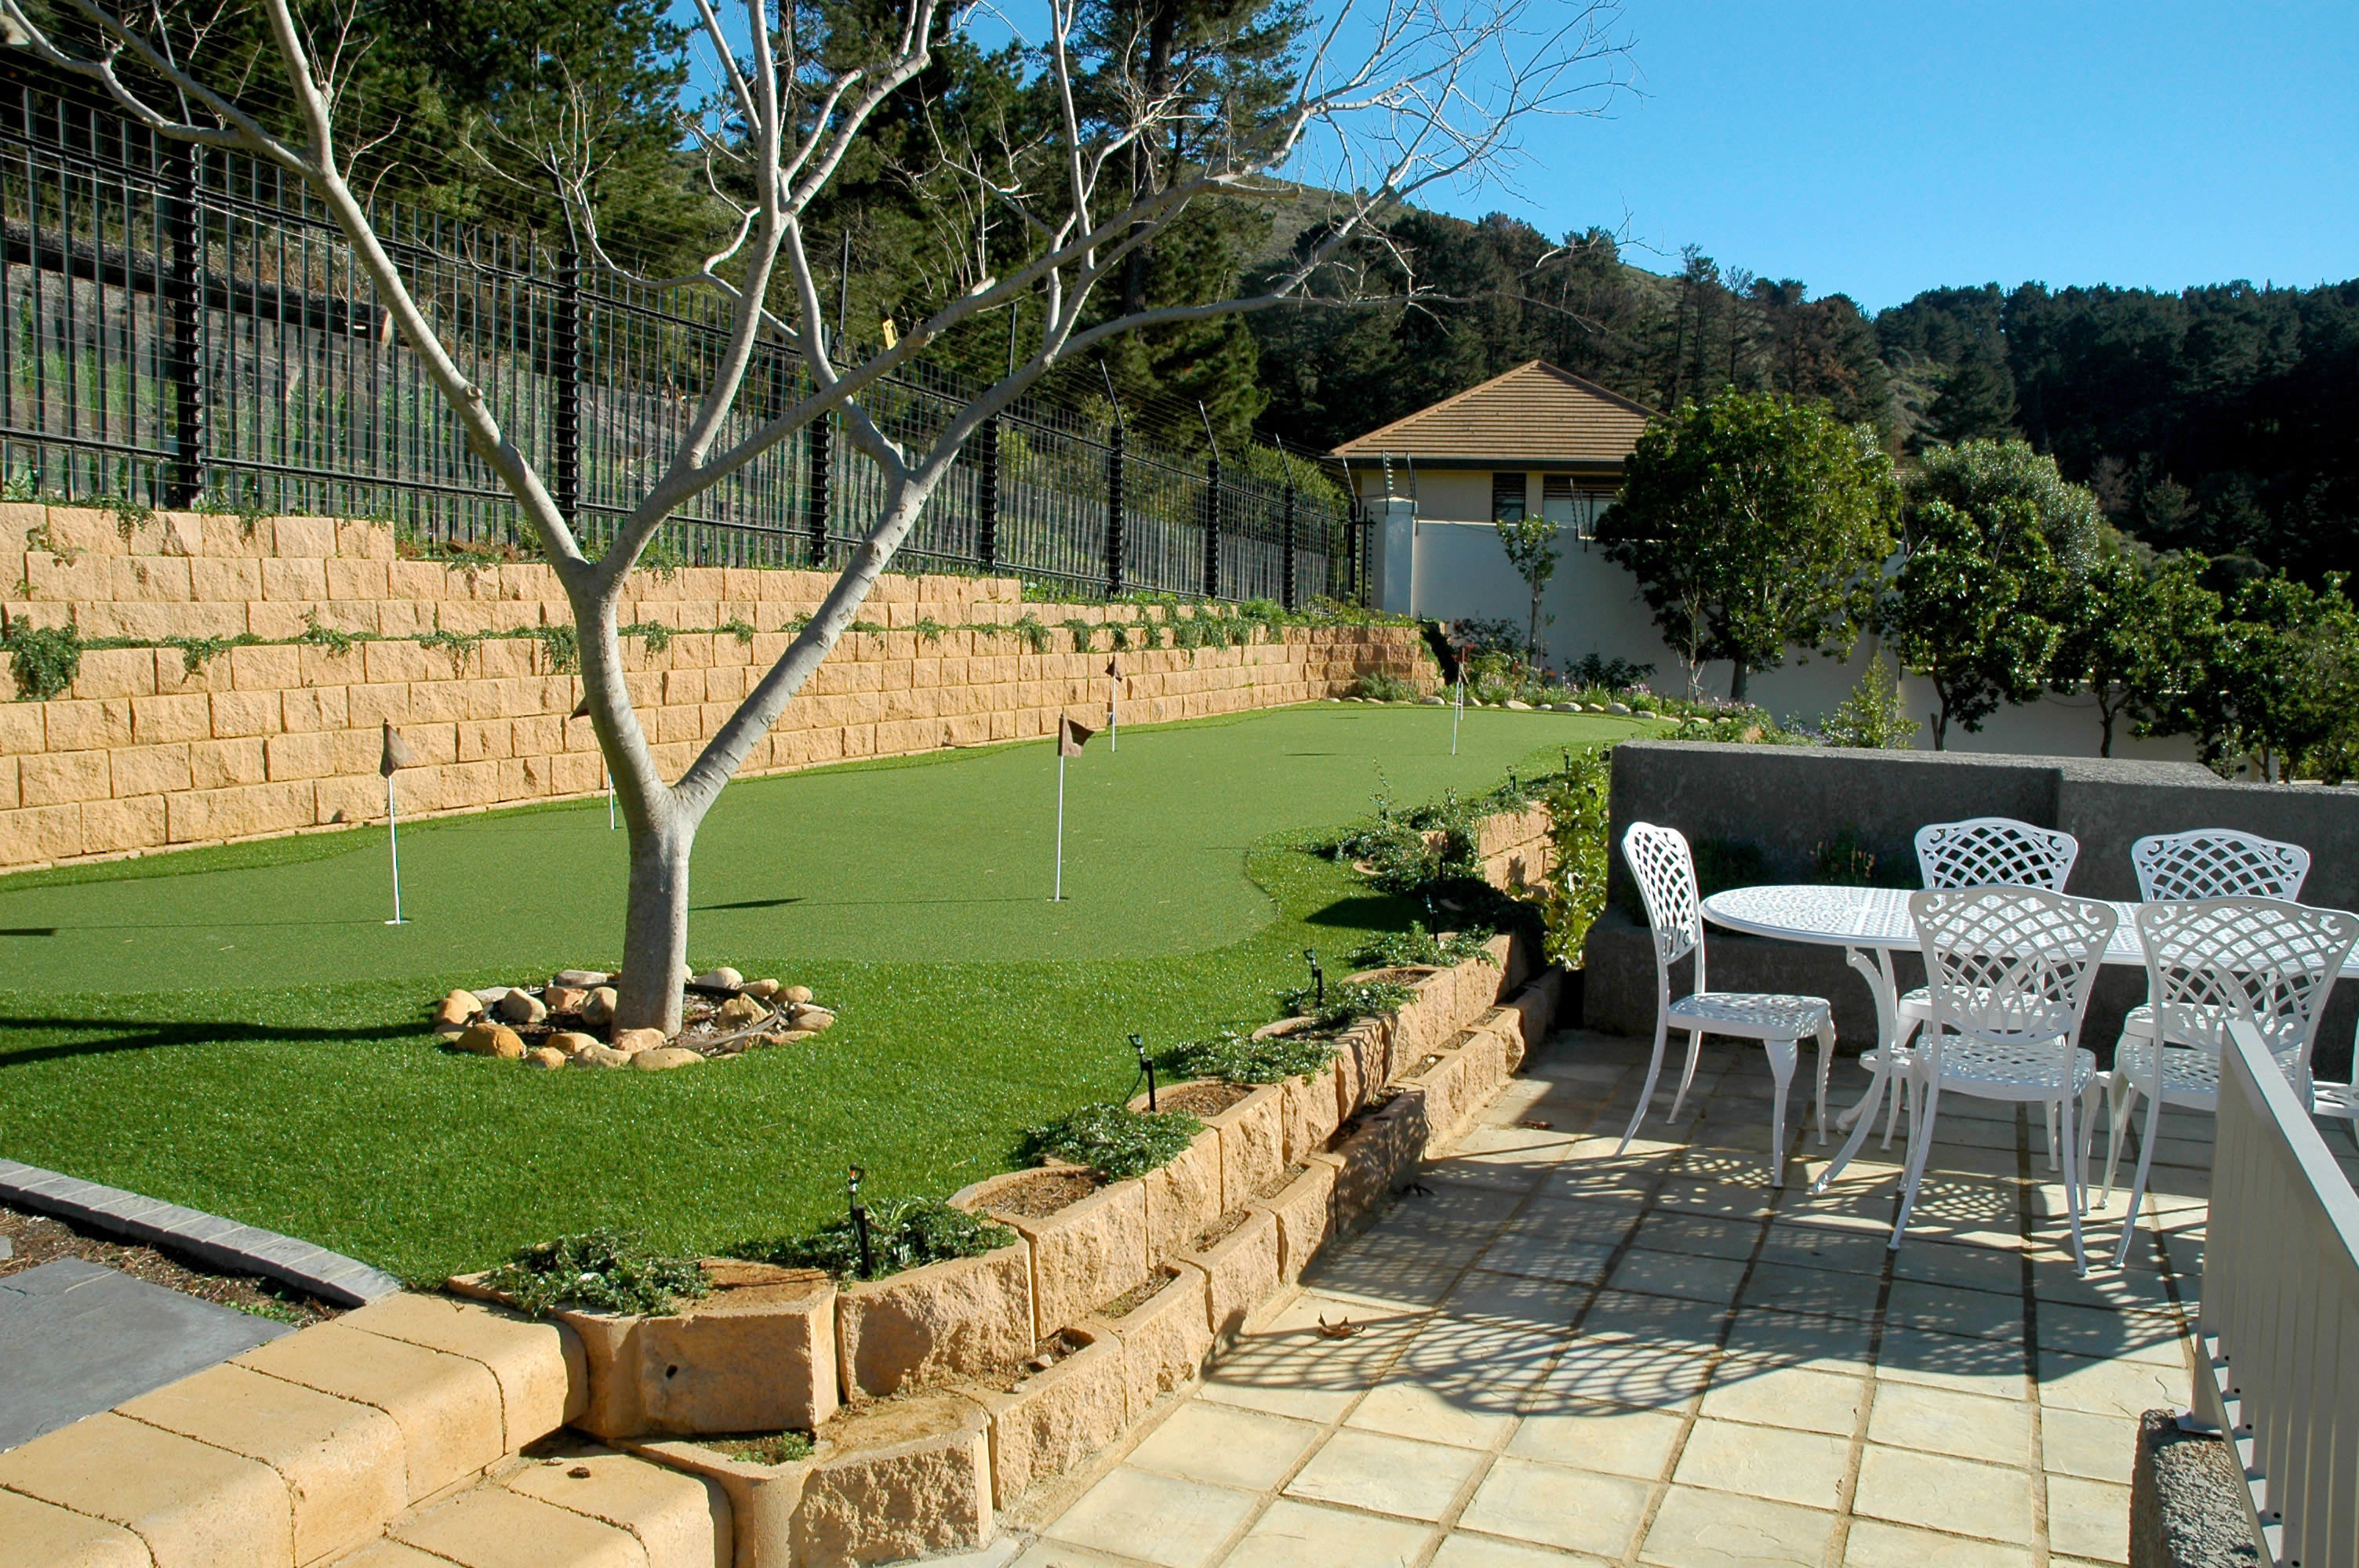 The retaining wall accommodates a small golf green